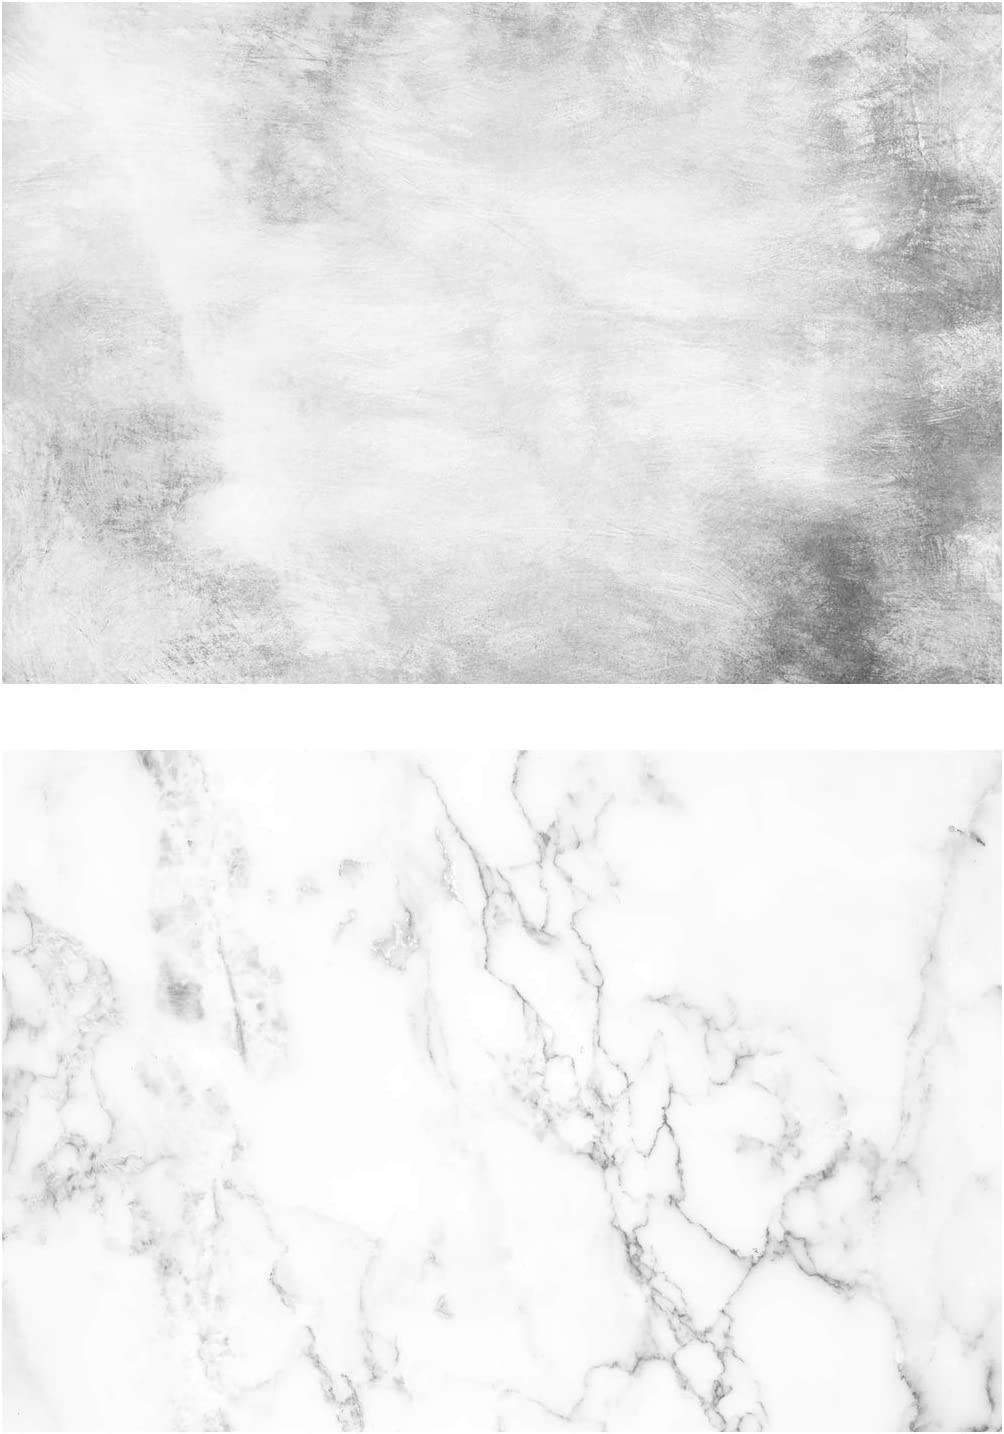 HUAYI Double Sided Pattern Background Cement Wall Marble Photo Backdrop Waterproof Paper for Food, Jewelry Seamless Paper Board Photography Studio Props DP-84 32.6X21.6 (83X55CM)